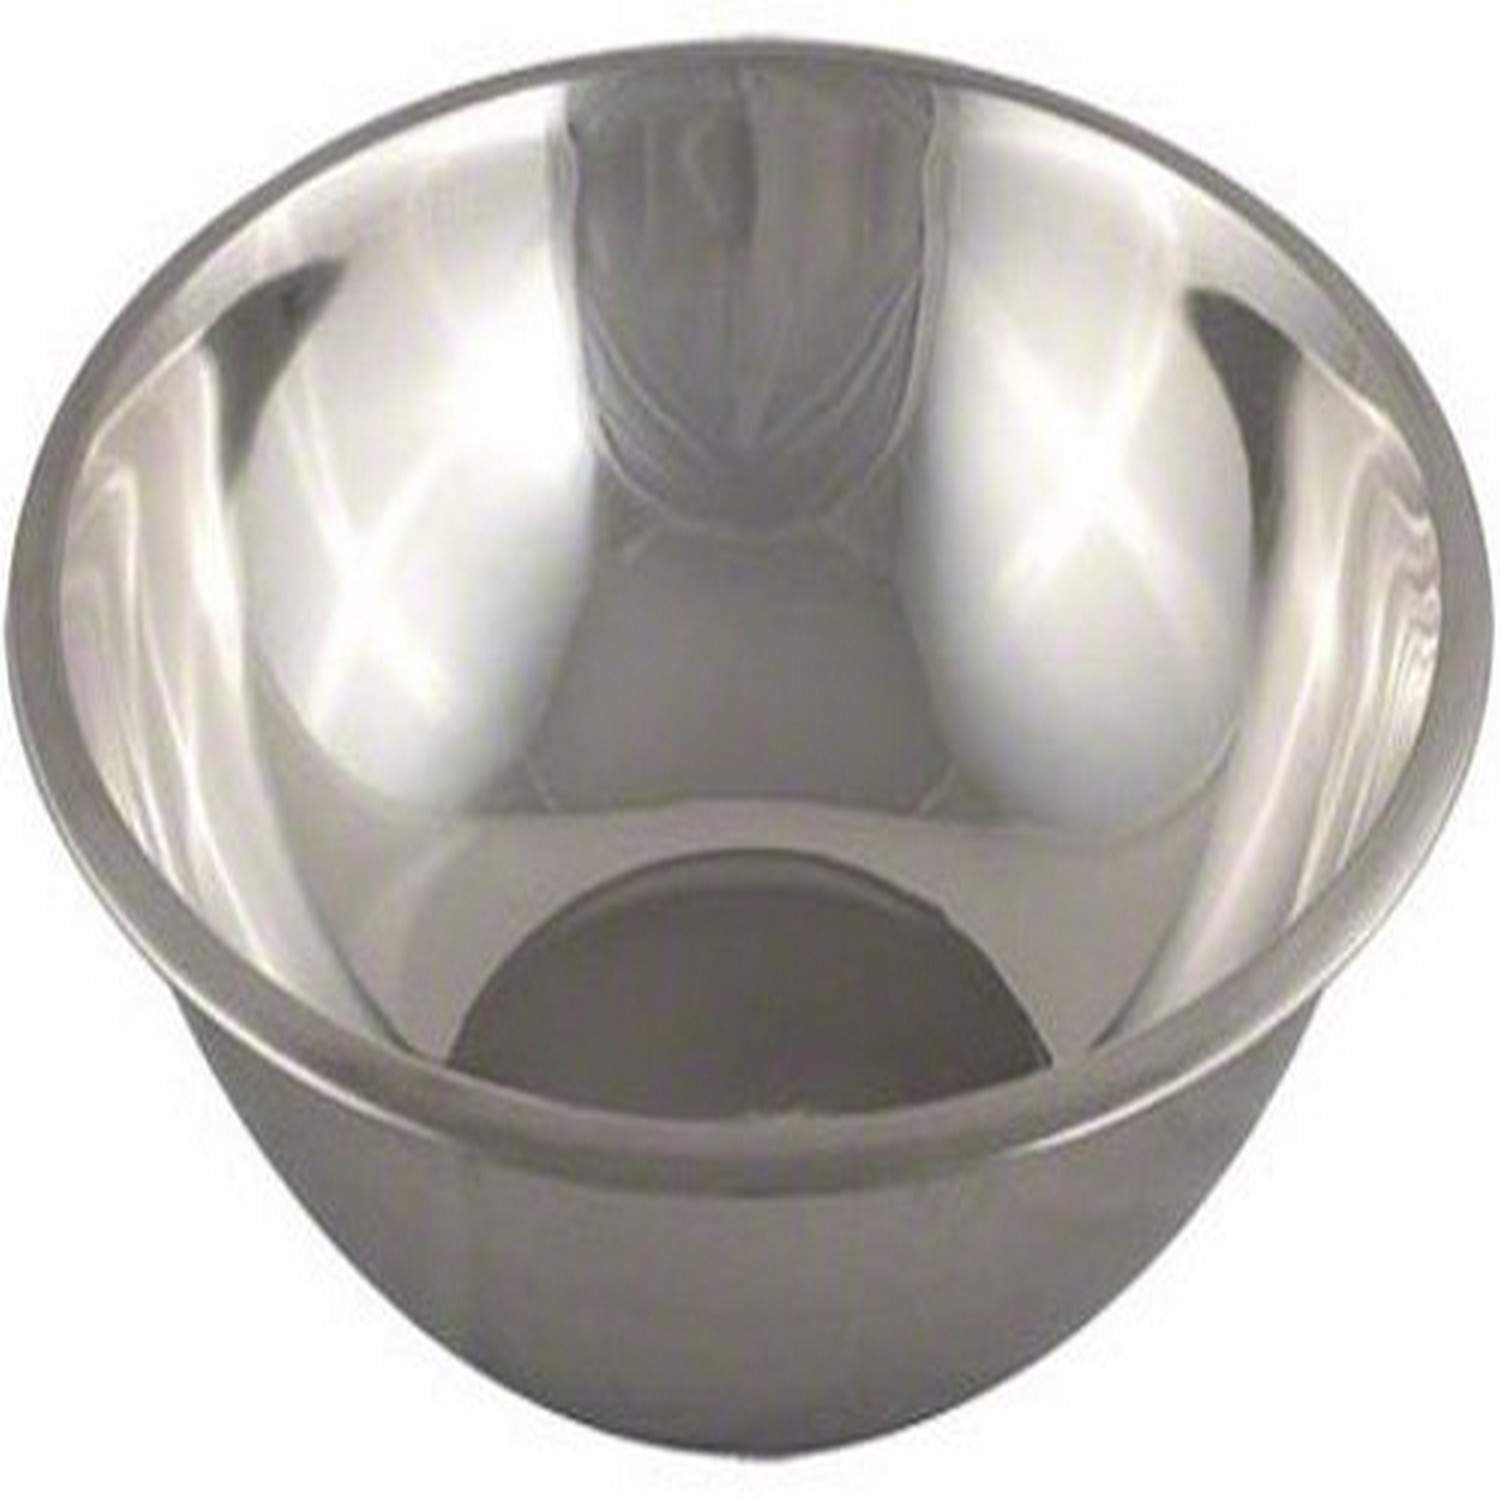 American outlet Metalcraft 8 qt Ranking TOP11 Steel Bowl Mixing Stainless